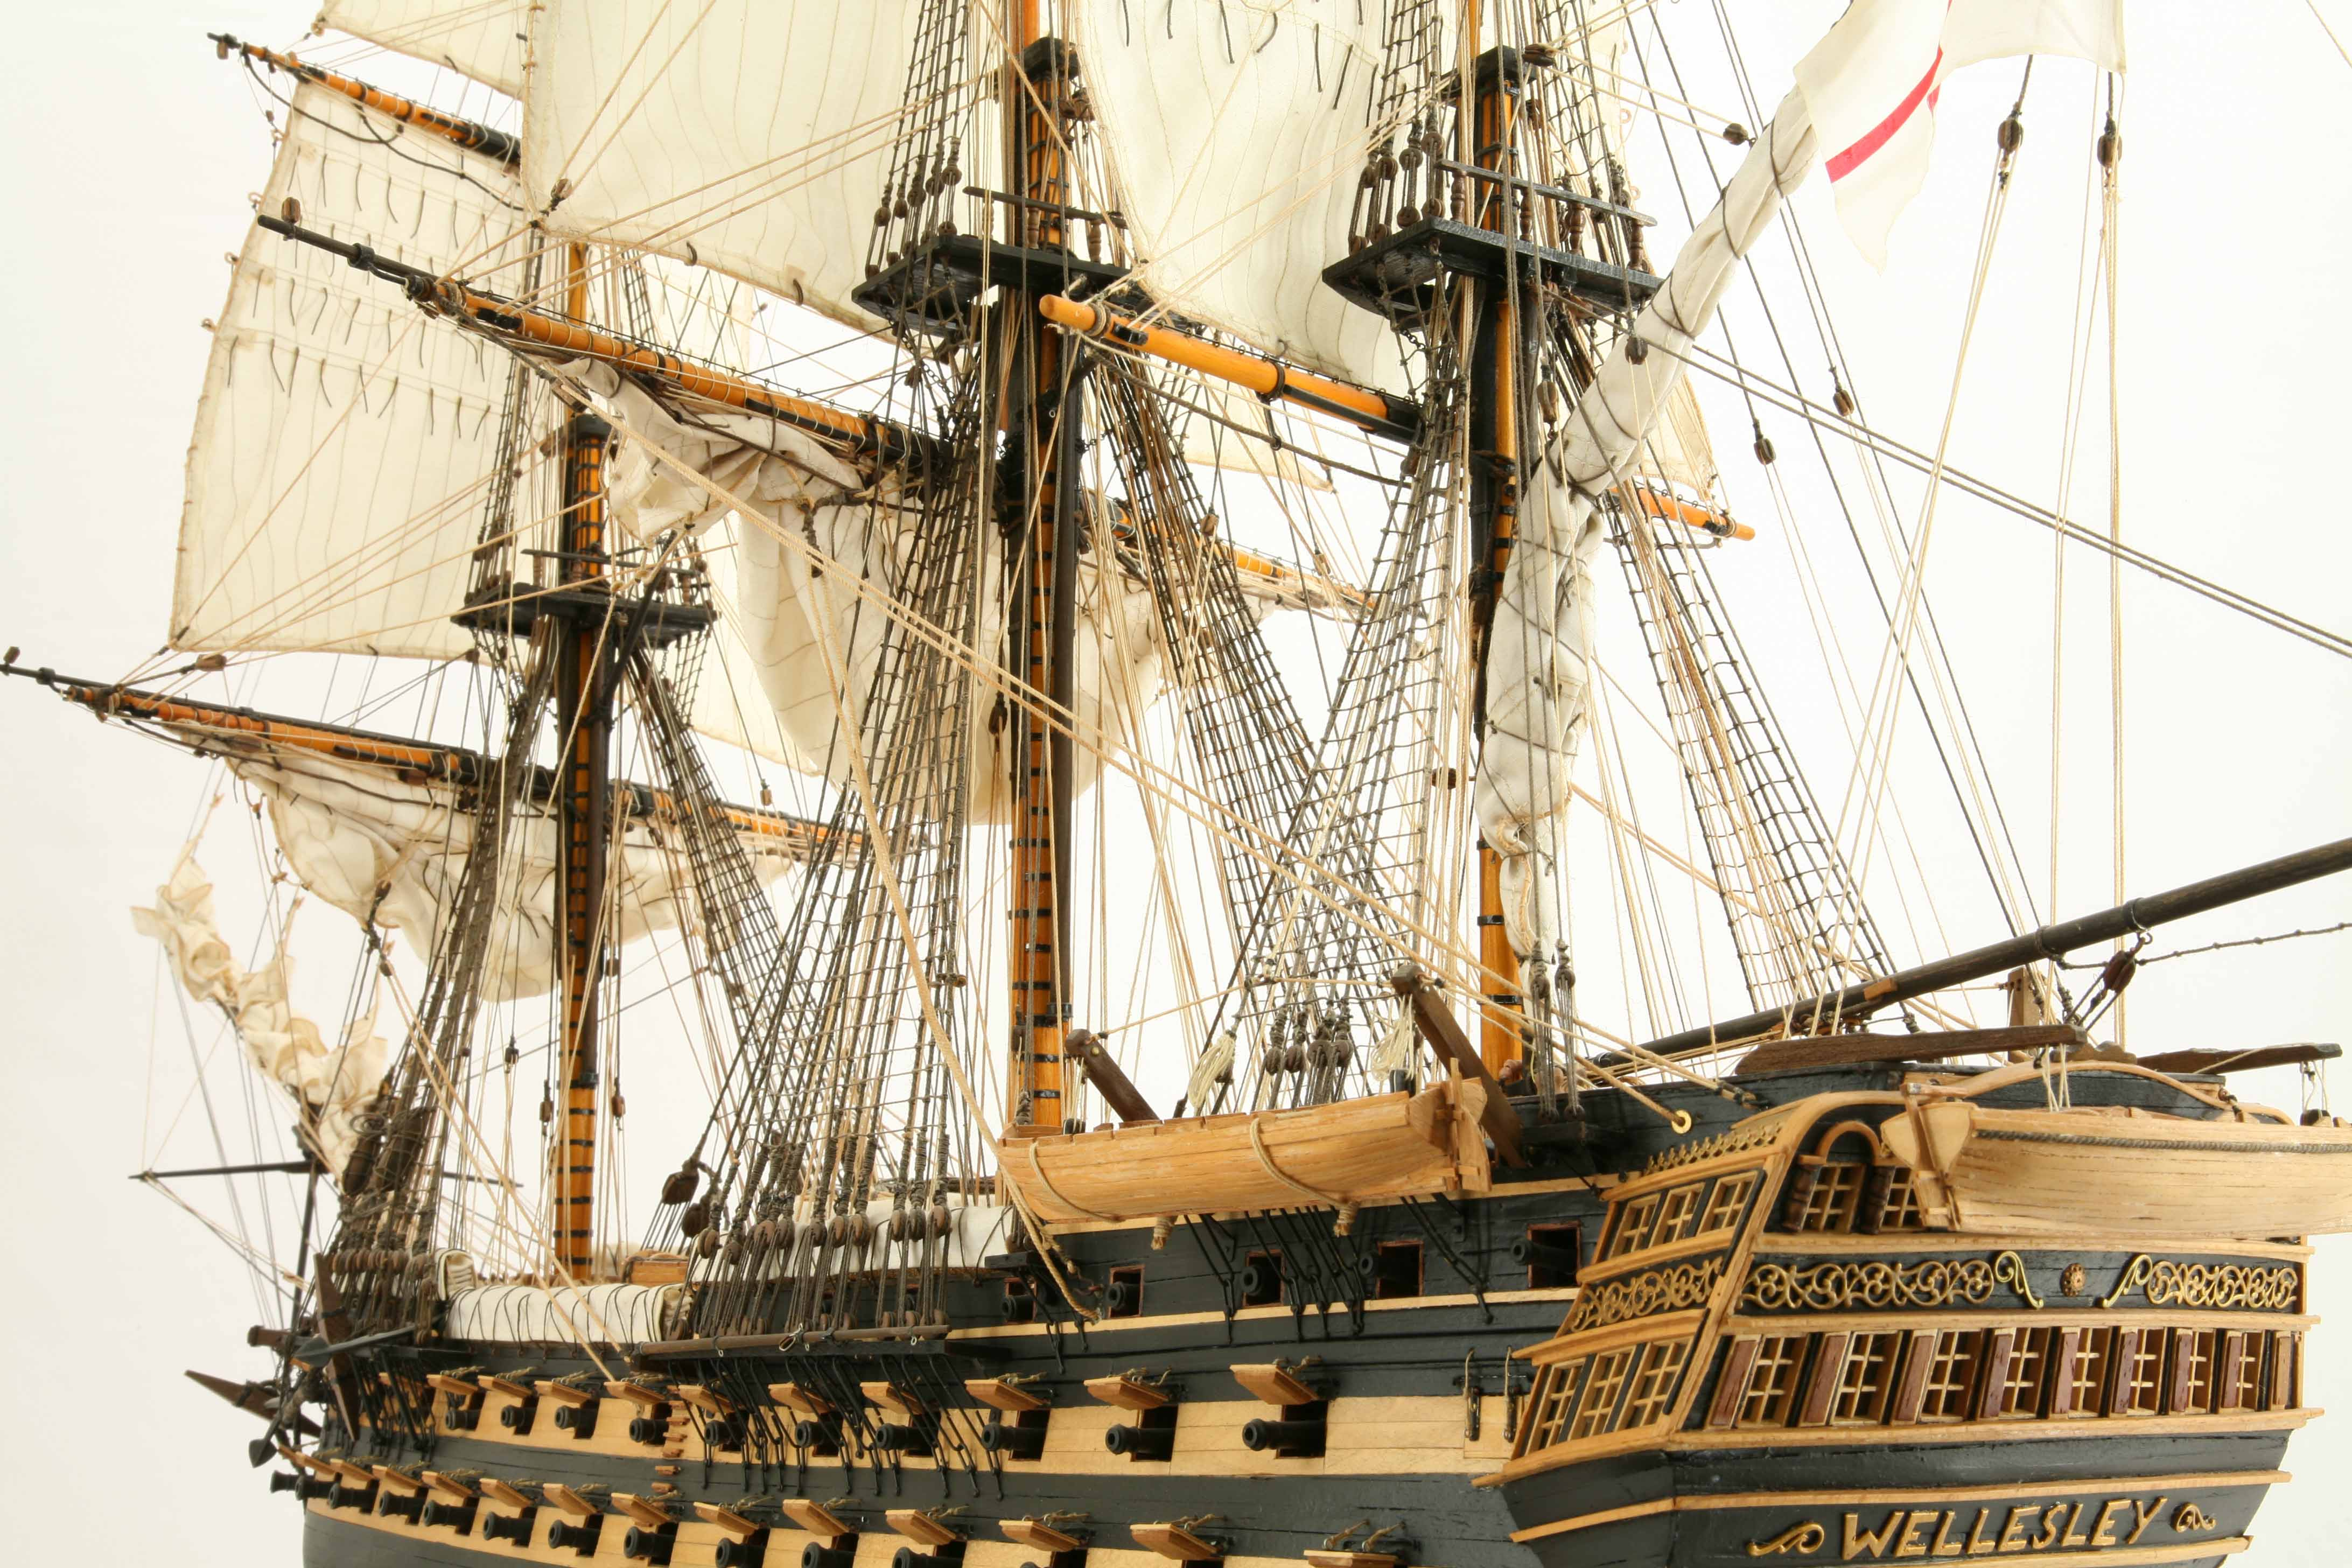 Close-up photos of ship model HMS Wellesley of 1815